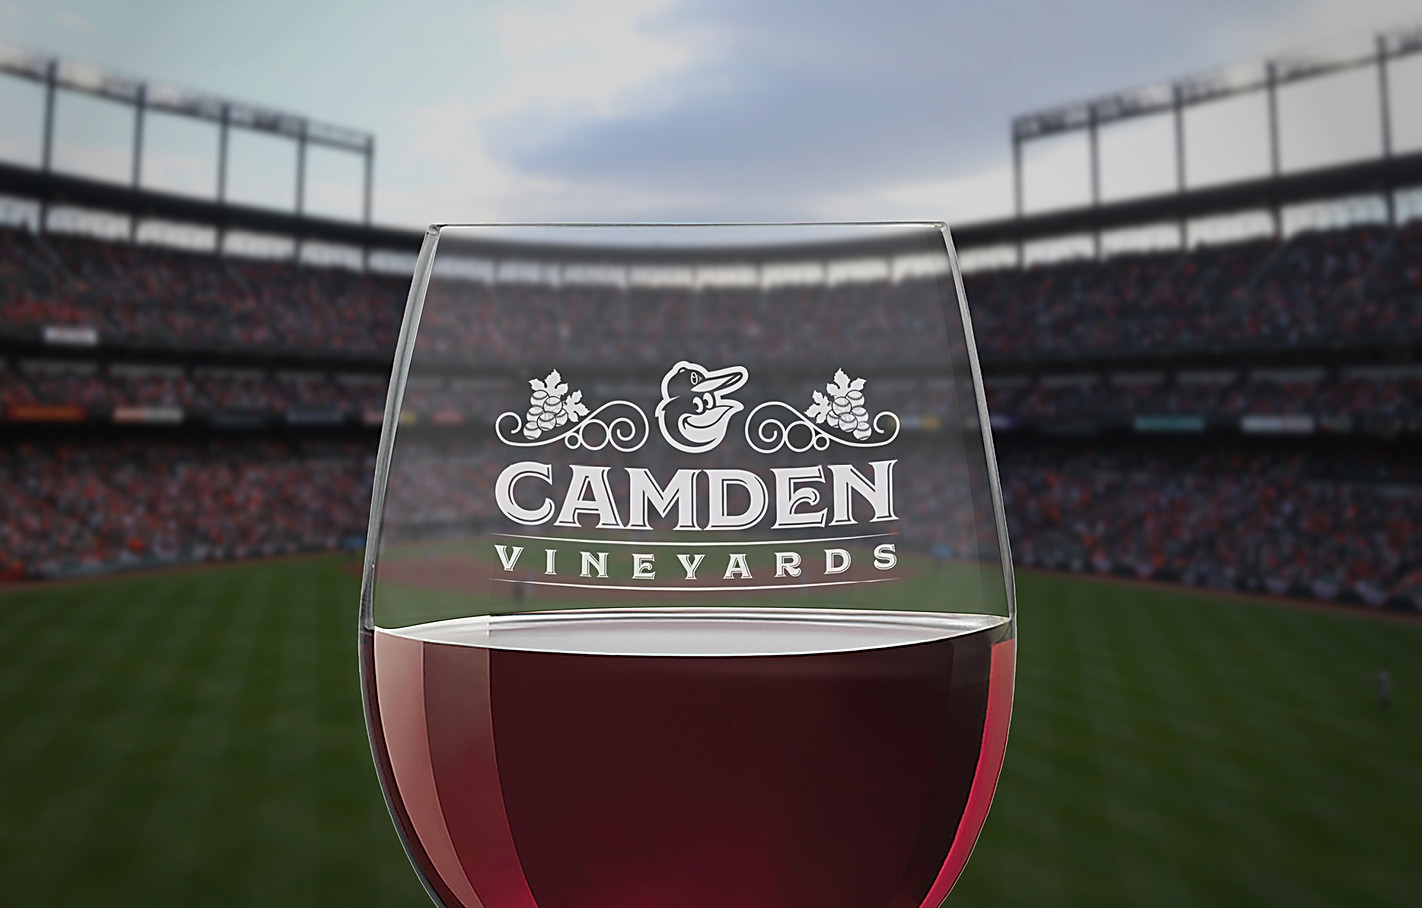 Orioles Camden Vineyards Logo and Wine Glass